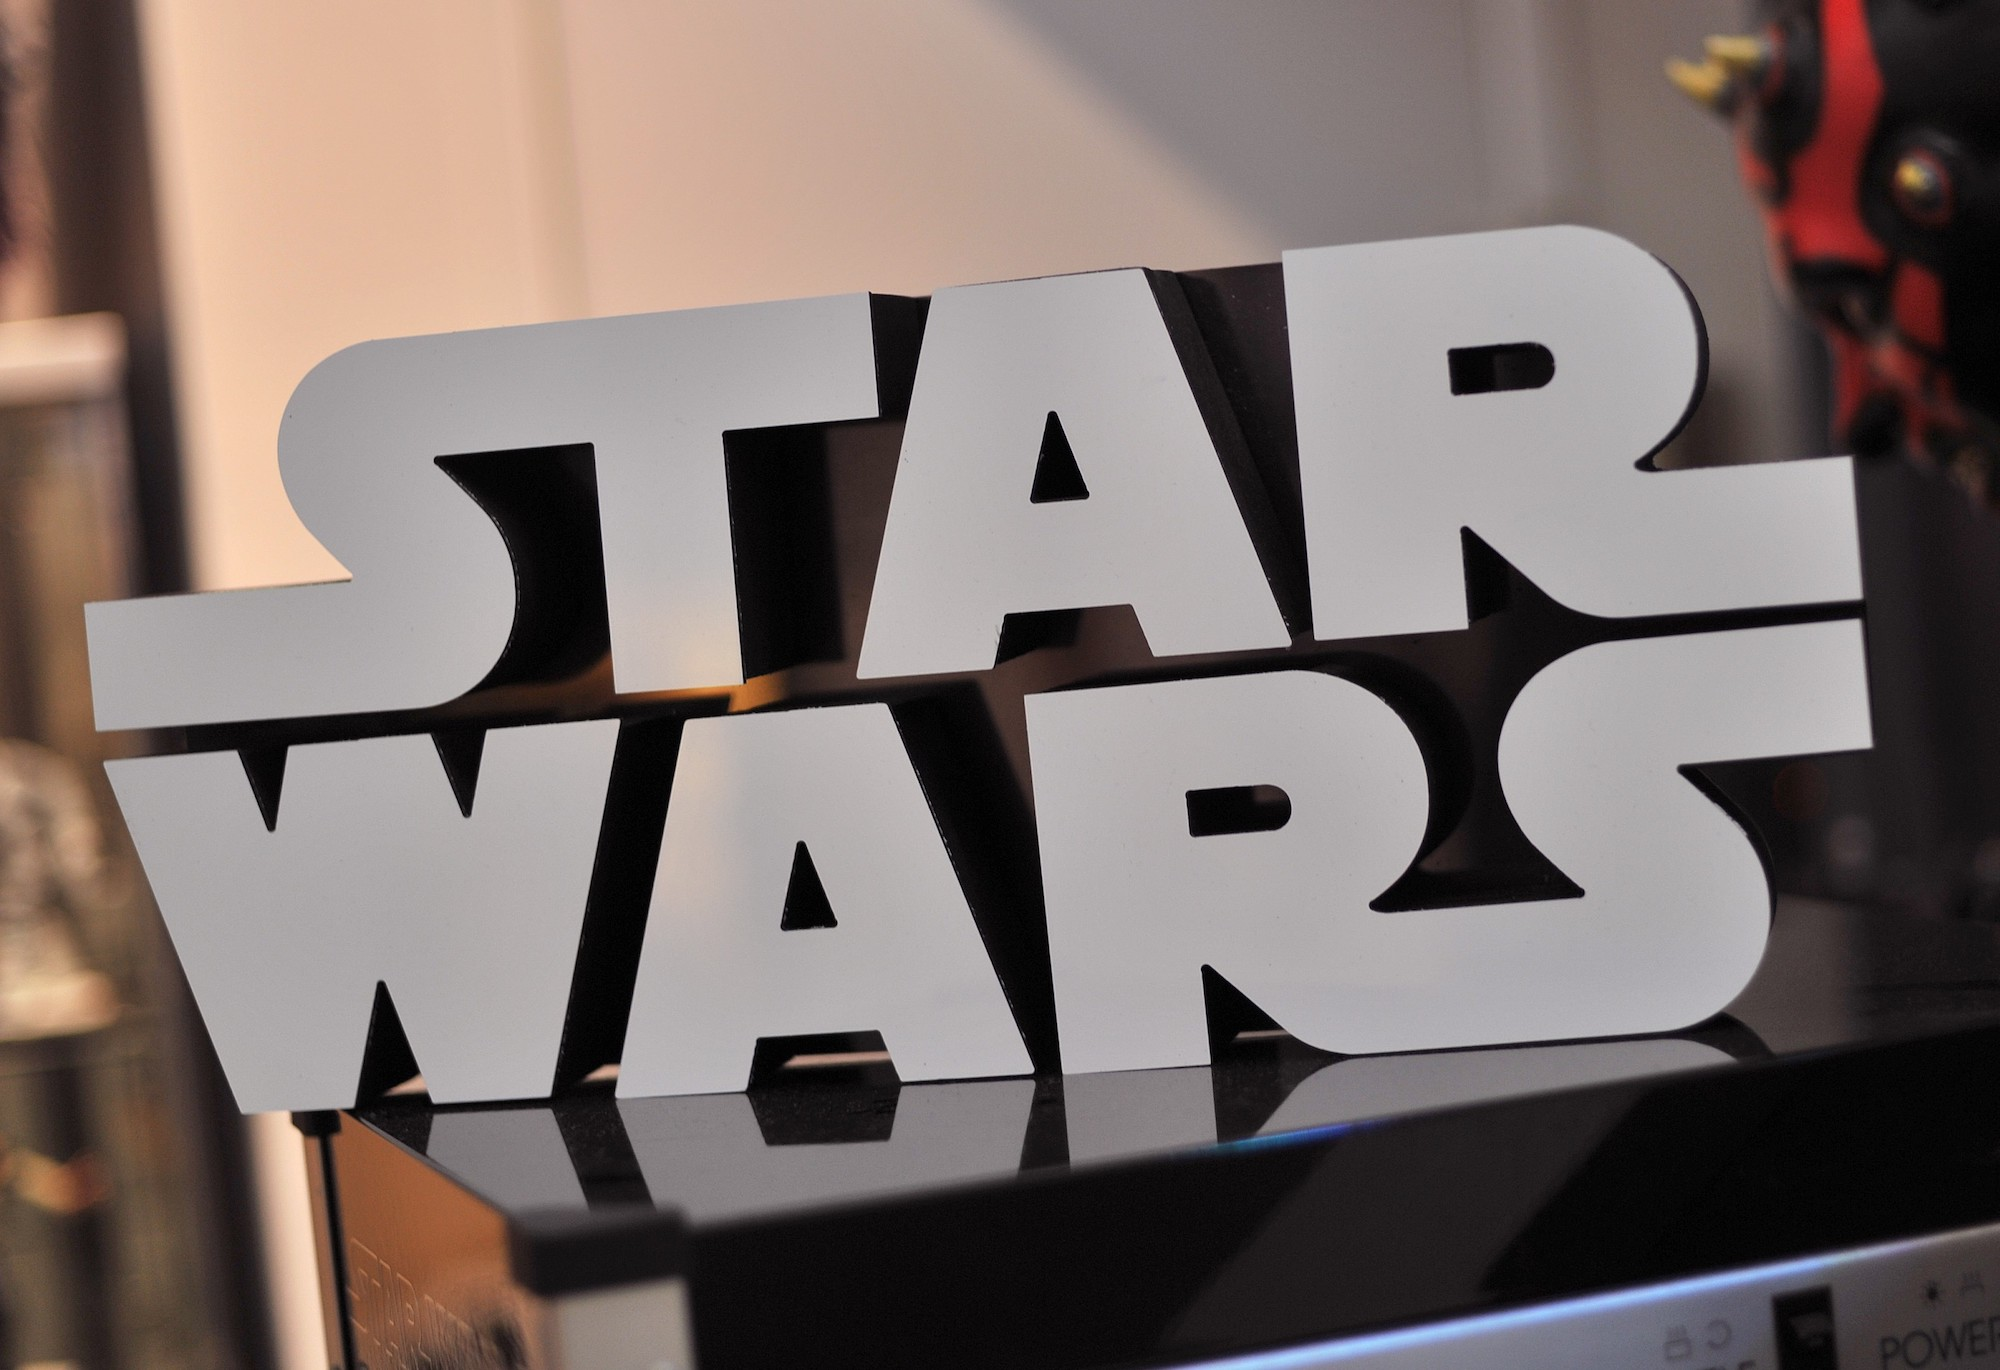 A Star Wars logo sign inside Rancho Obi-Wan, the world's largest private collection of Star Wars memorabilia, in Petaluma, California on November 24, 2015